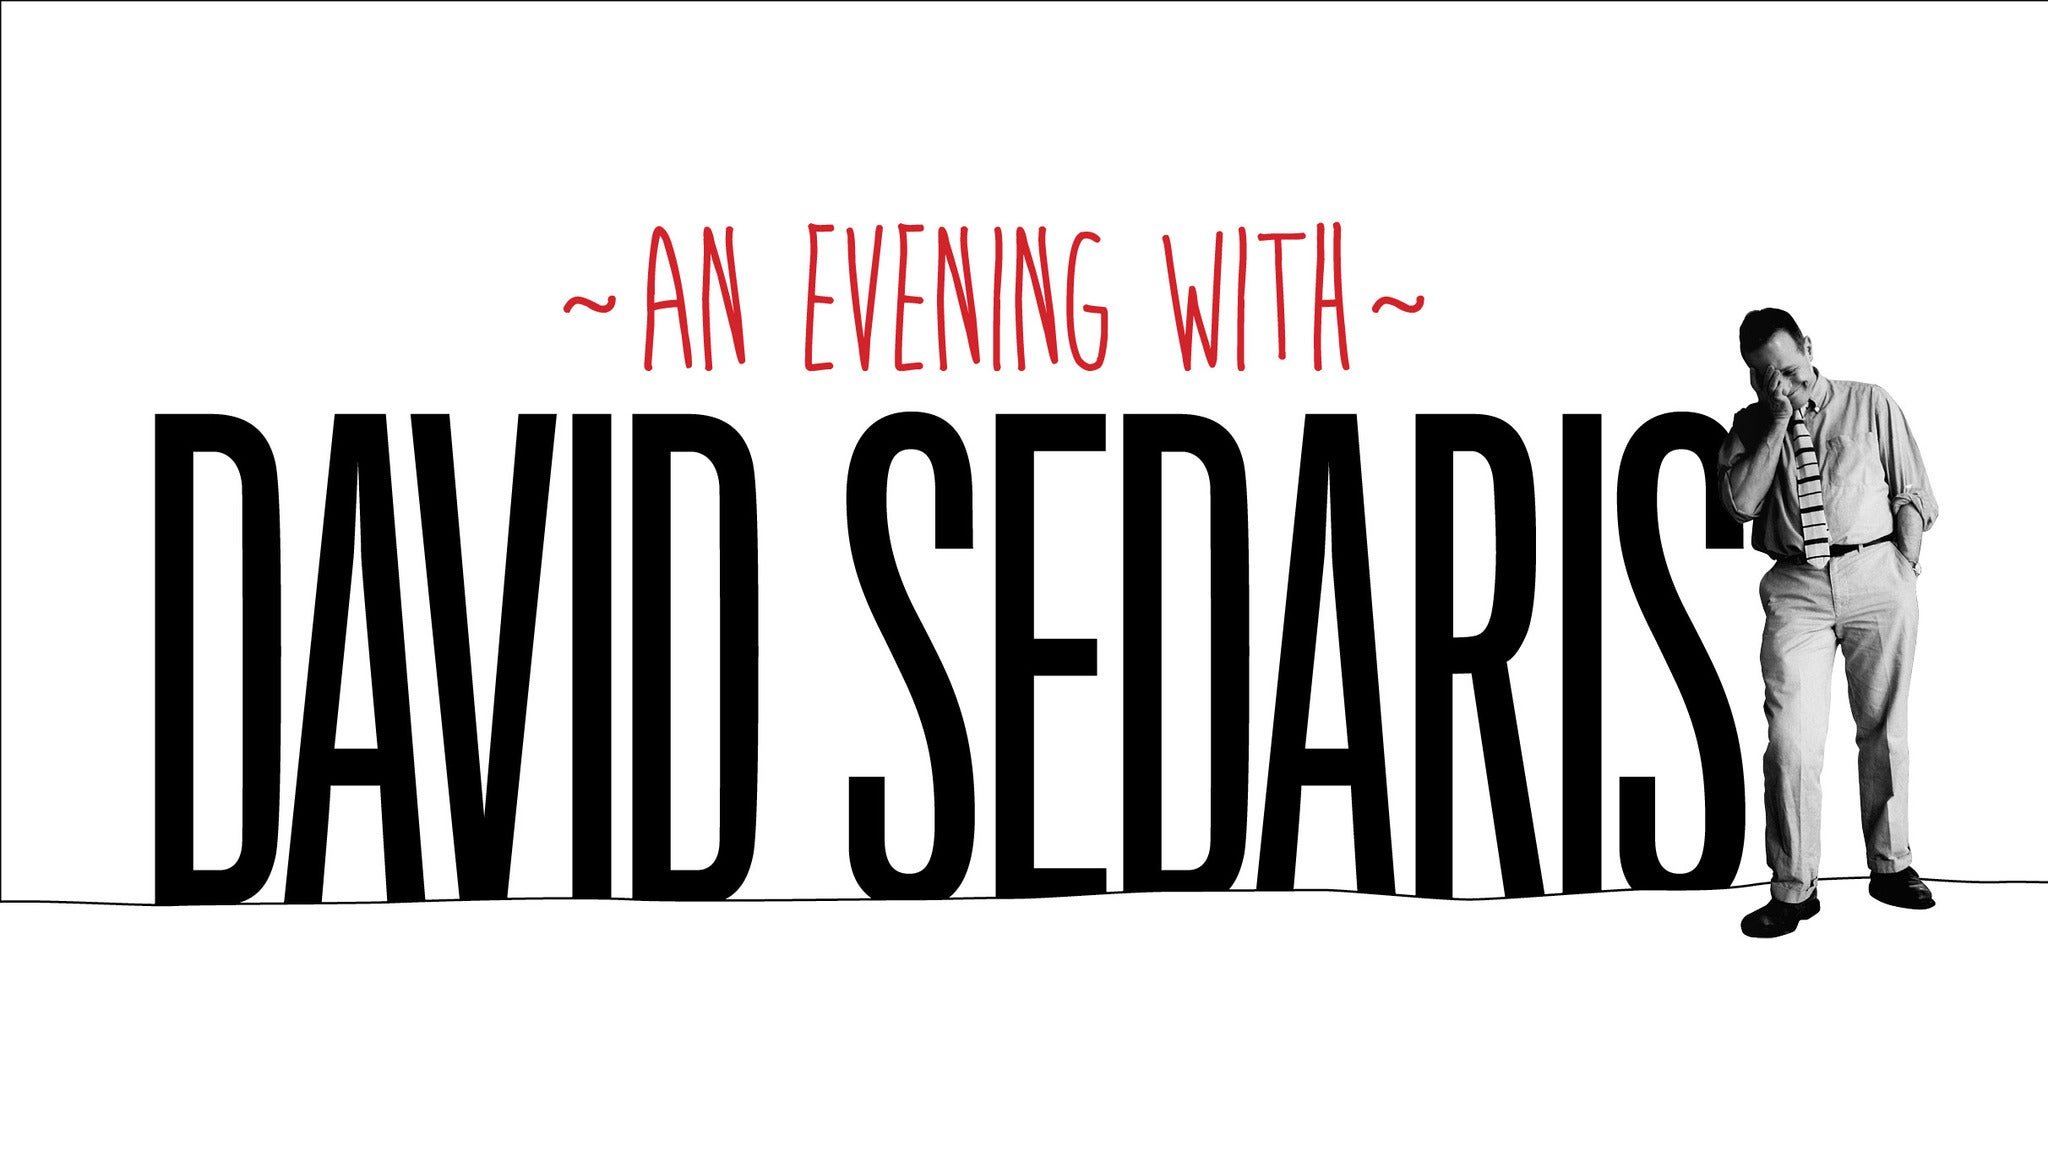 David Sedaris at Robinson Performance Hall